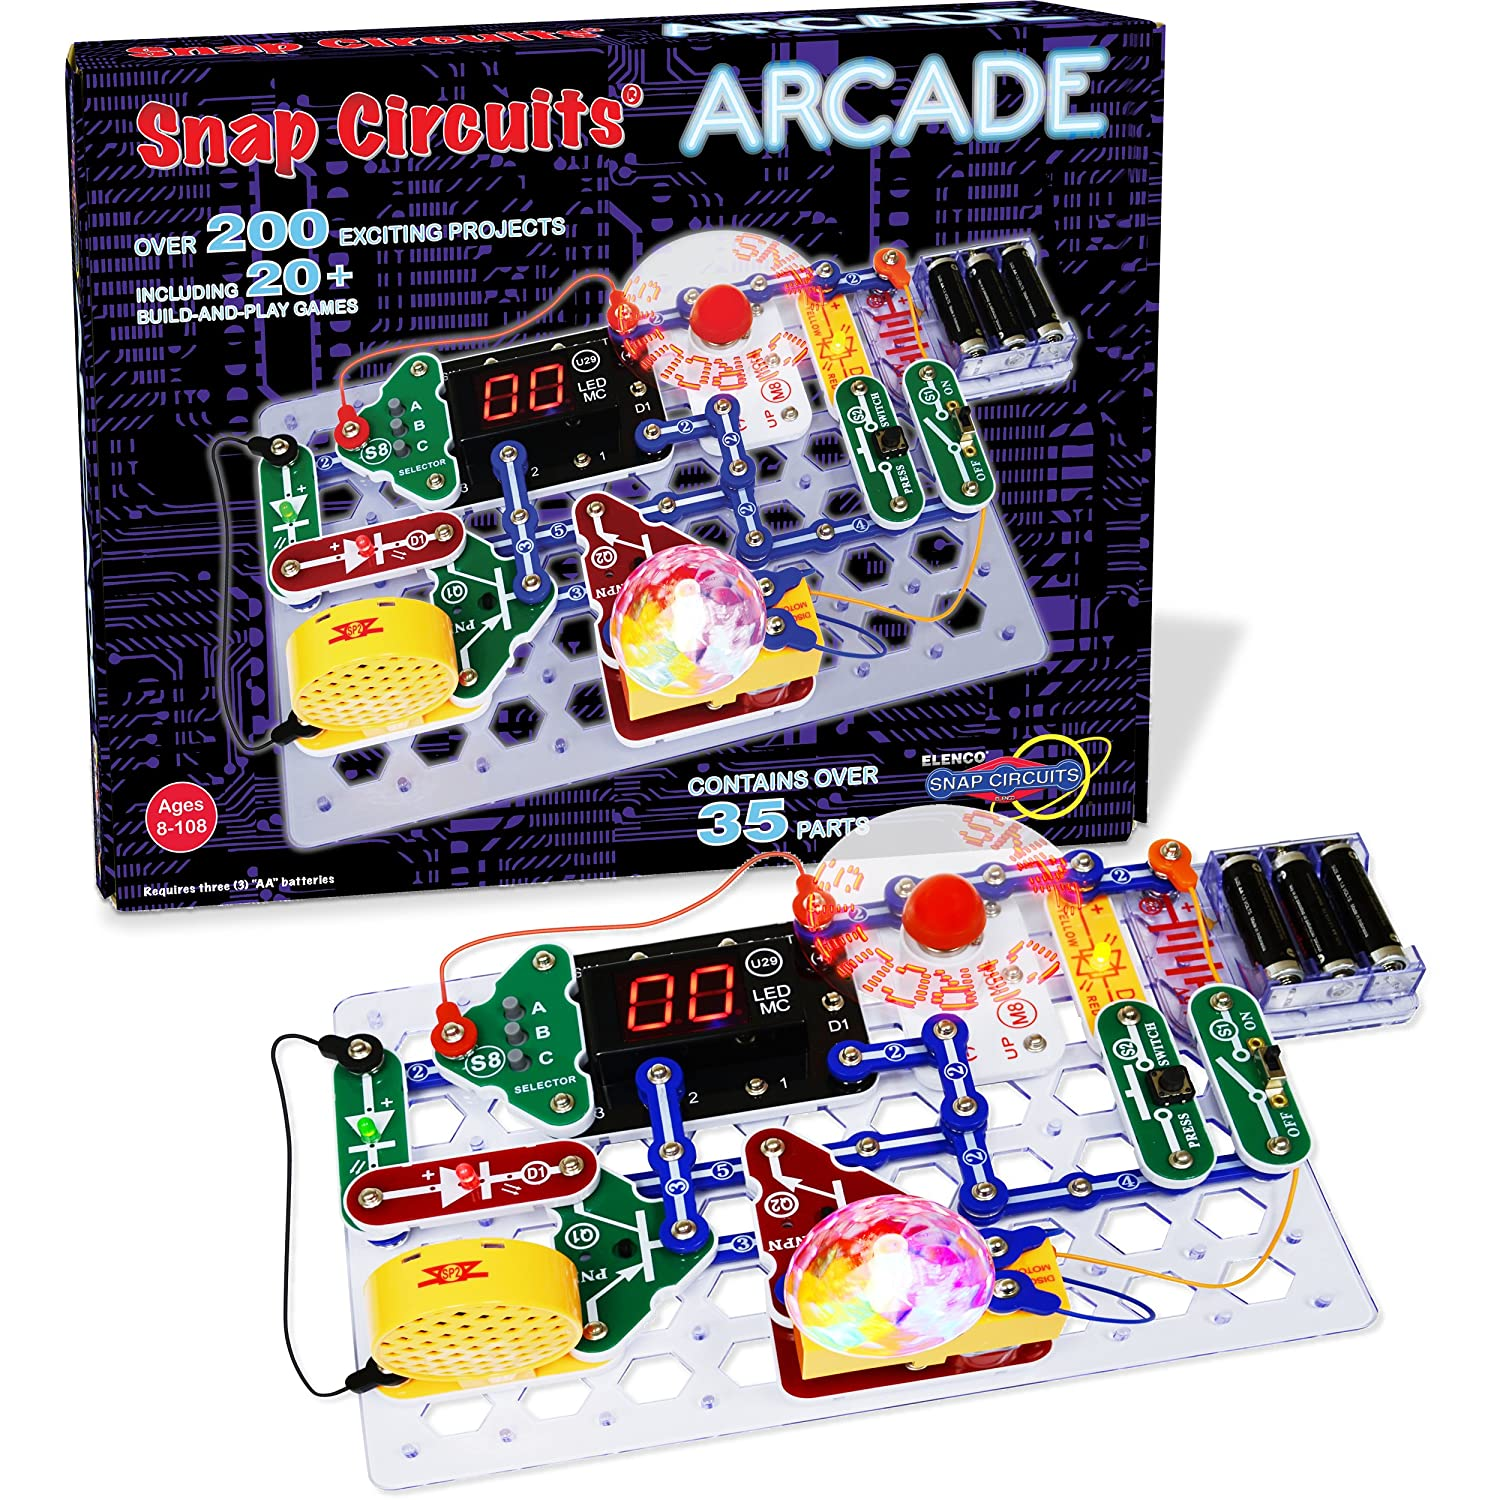 Snap Circuits Arcade Electronics Exploration Kit Over Green Energy Pro 200 Stem Projects 4 Color Project Manual 20 Build And Play Games 35 Modules